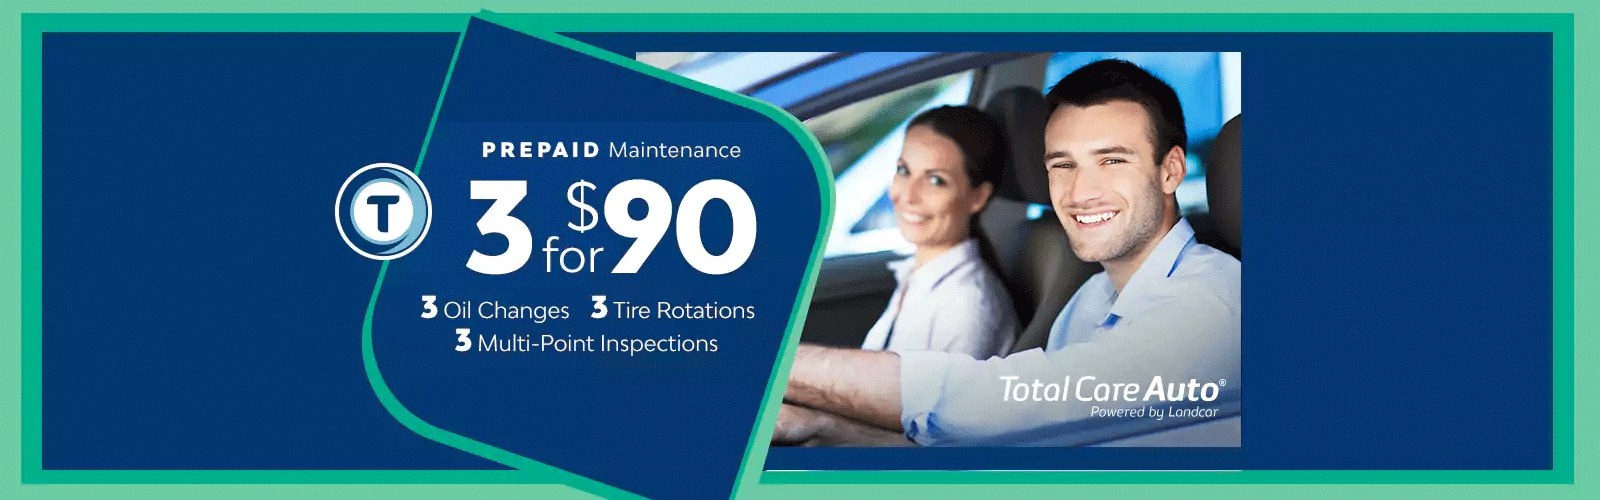 Total Care Auto Prepaid Maintenance in Denver